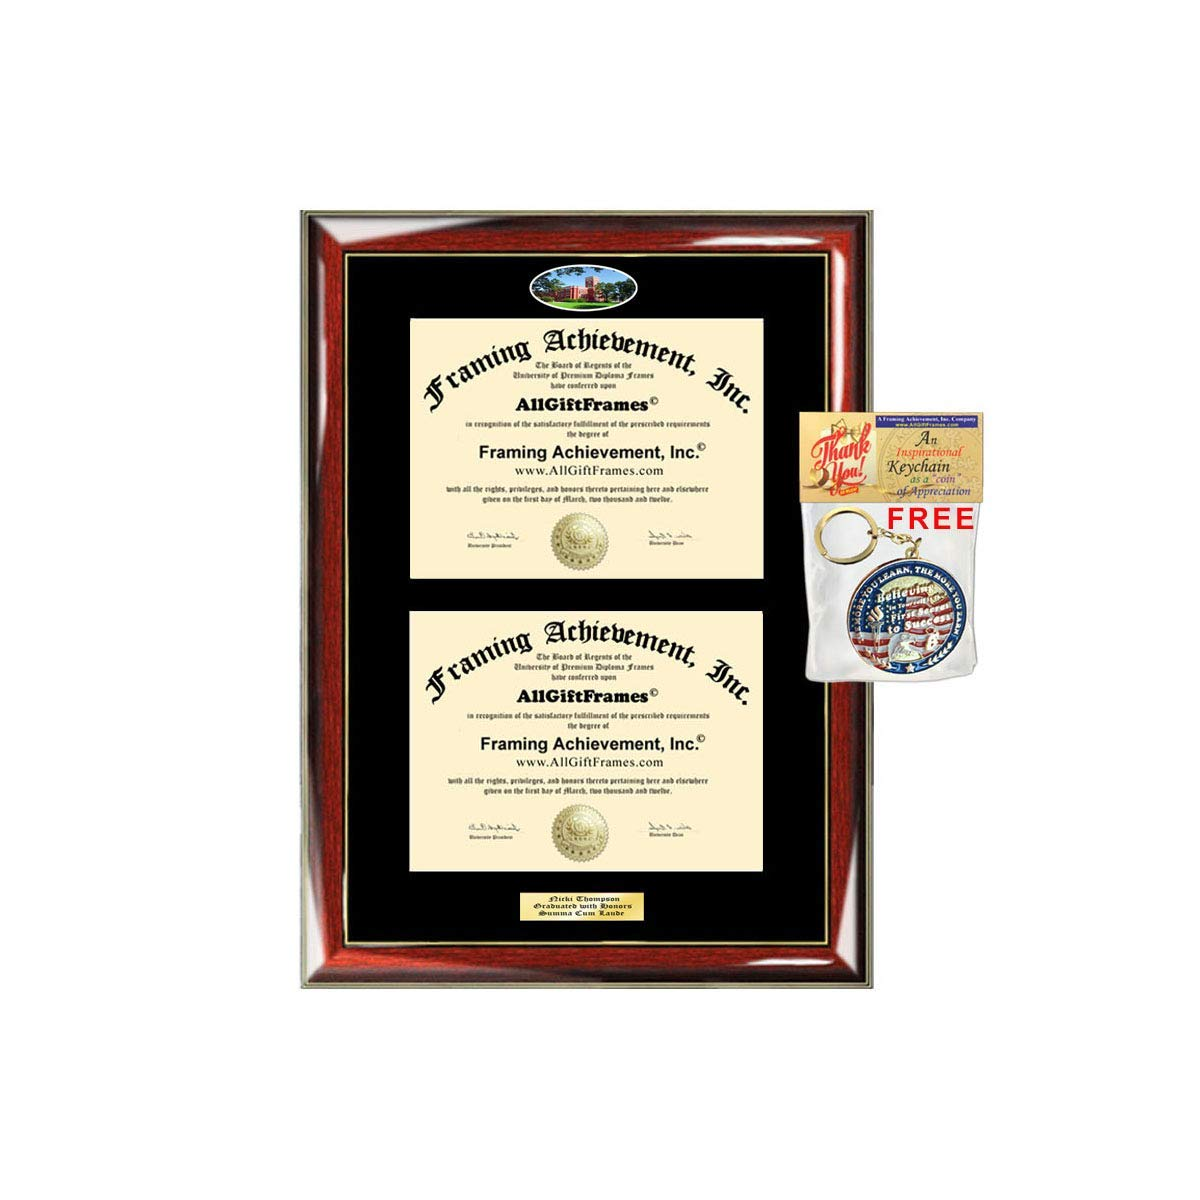 Double Diploma Frame Ohio Northern University ONU Dual Degree Holder Engraving Framing Two Certificate Holder Graduation Gift Bachelor Master MBA